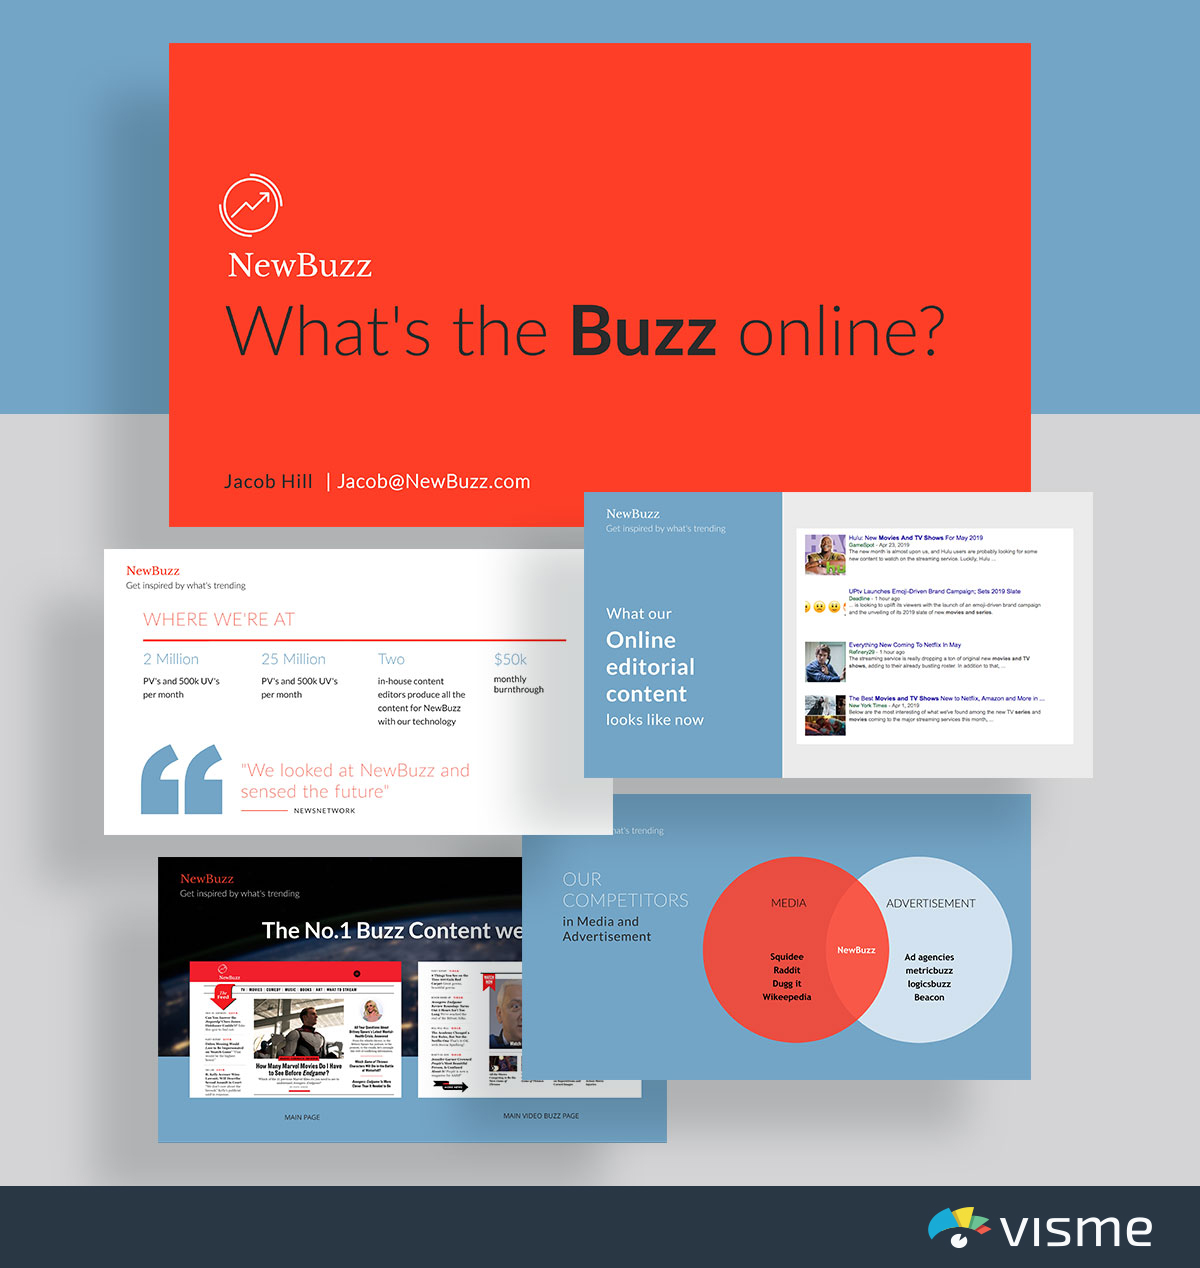 presentation slides - newbuzz buzzfeed pitch deck template visme